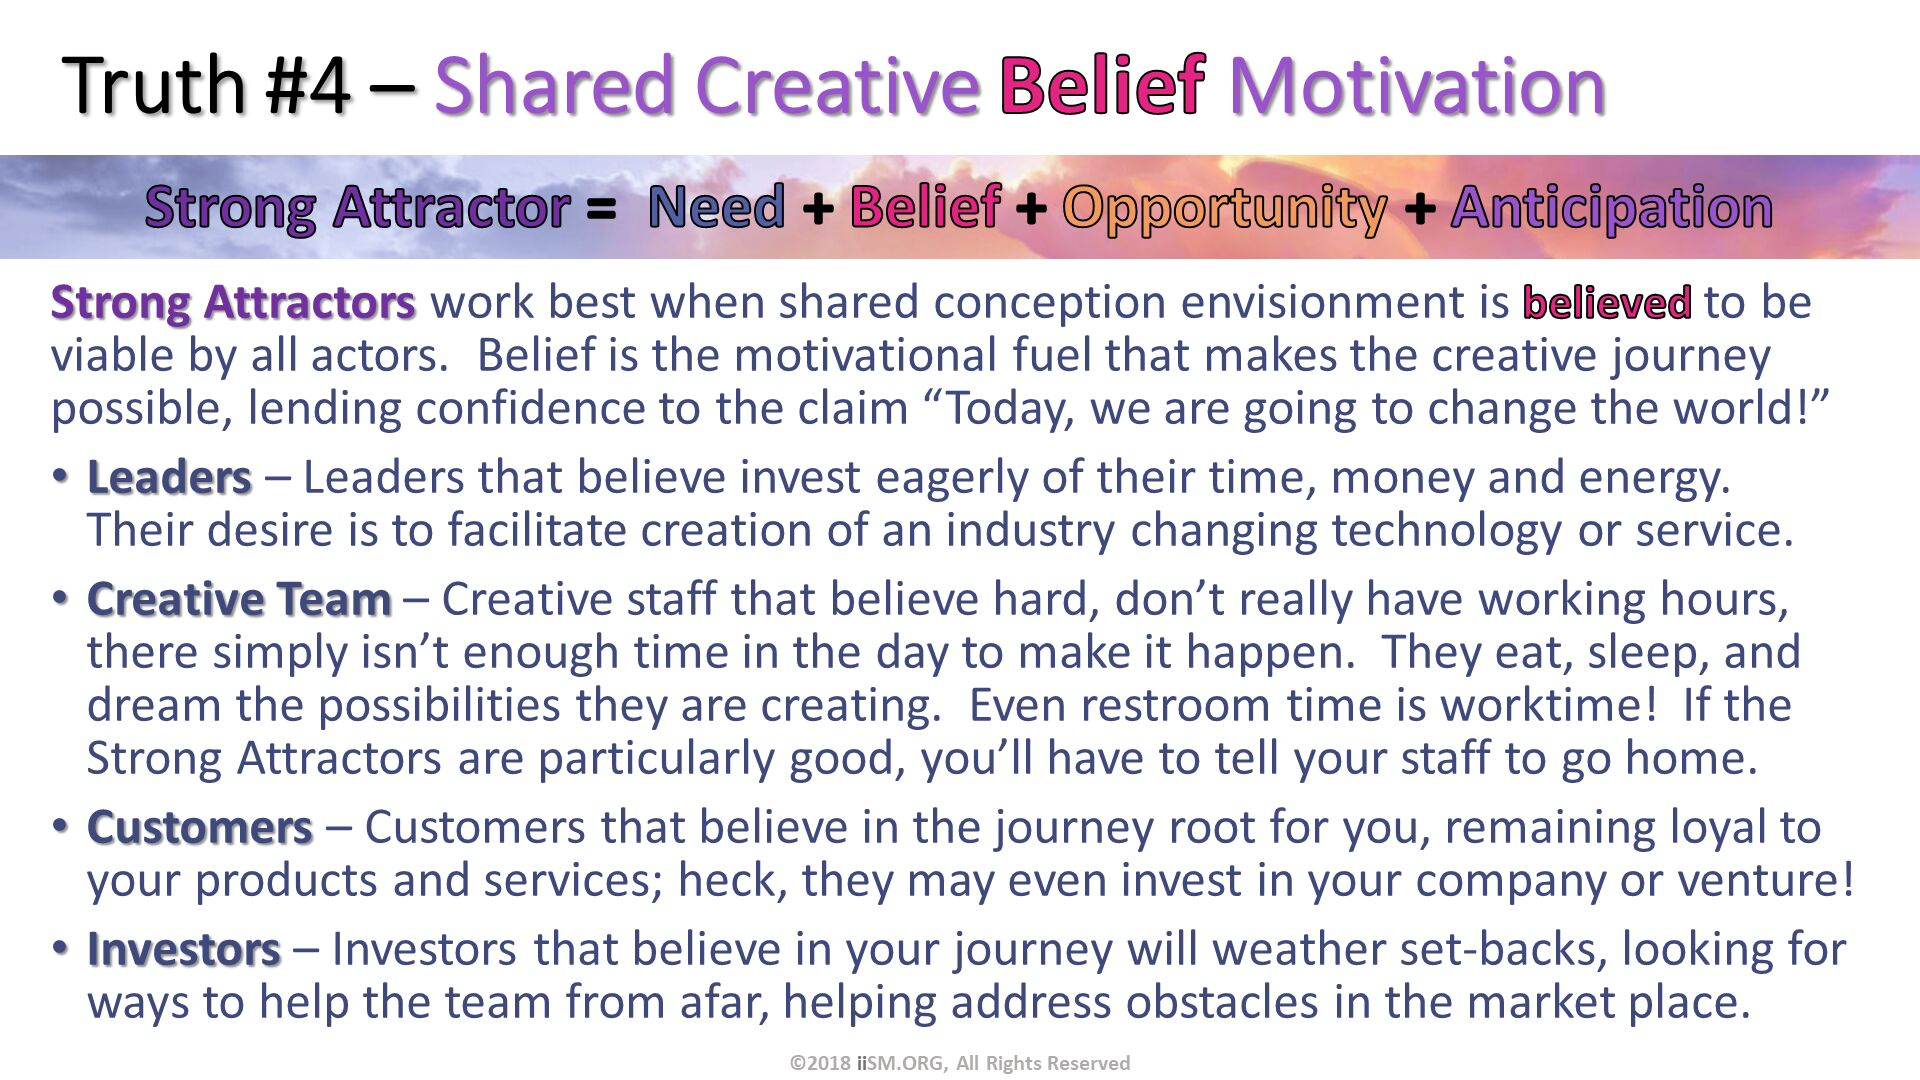 "Truth #4 – Shared Creative Belief Motivation. Strong Attractors work best when shared conception envisionment is believed to be viable by all actors.  Belief is the motivational fuel that makes the creative journey possible, lending confidence to the claim ""Today, we are going to change the world!"" Leaders – Leaders that believe invest eagerly of their time, money and energy.  Their desire is to facilitate creation of an industry changing technology or service. Creative Team – Creative staff that believe hard, don't really have working hours, there simply isn't enough time in the day to make it happen.  They eat, sleep, and dream the possibilities they are creating.  Even restroom time is worktime!  If the Strong Attractors are particularly good, you'll have to tell your staff to go home. Customers – Customers that believe in the journey root for you, remaining loyal to your products and services; heck, they may even invest in your company or venture! Investors – Investors that believe in your journey will weather set-backs, looking for ways to help the team from afar, helping address obstacles in the market place.  . ©2018 iiSM.ORG, All Rights Reserved."